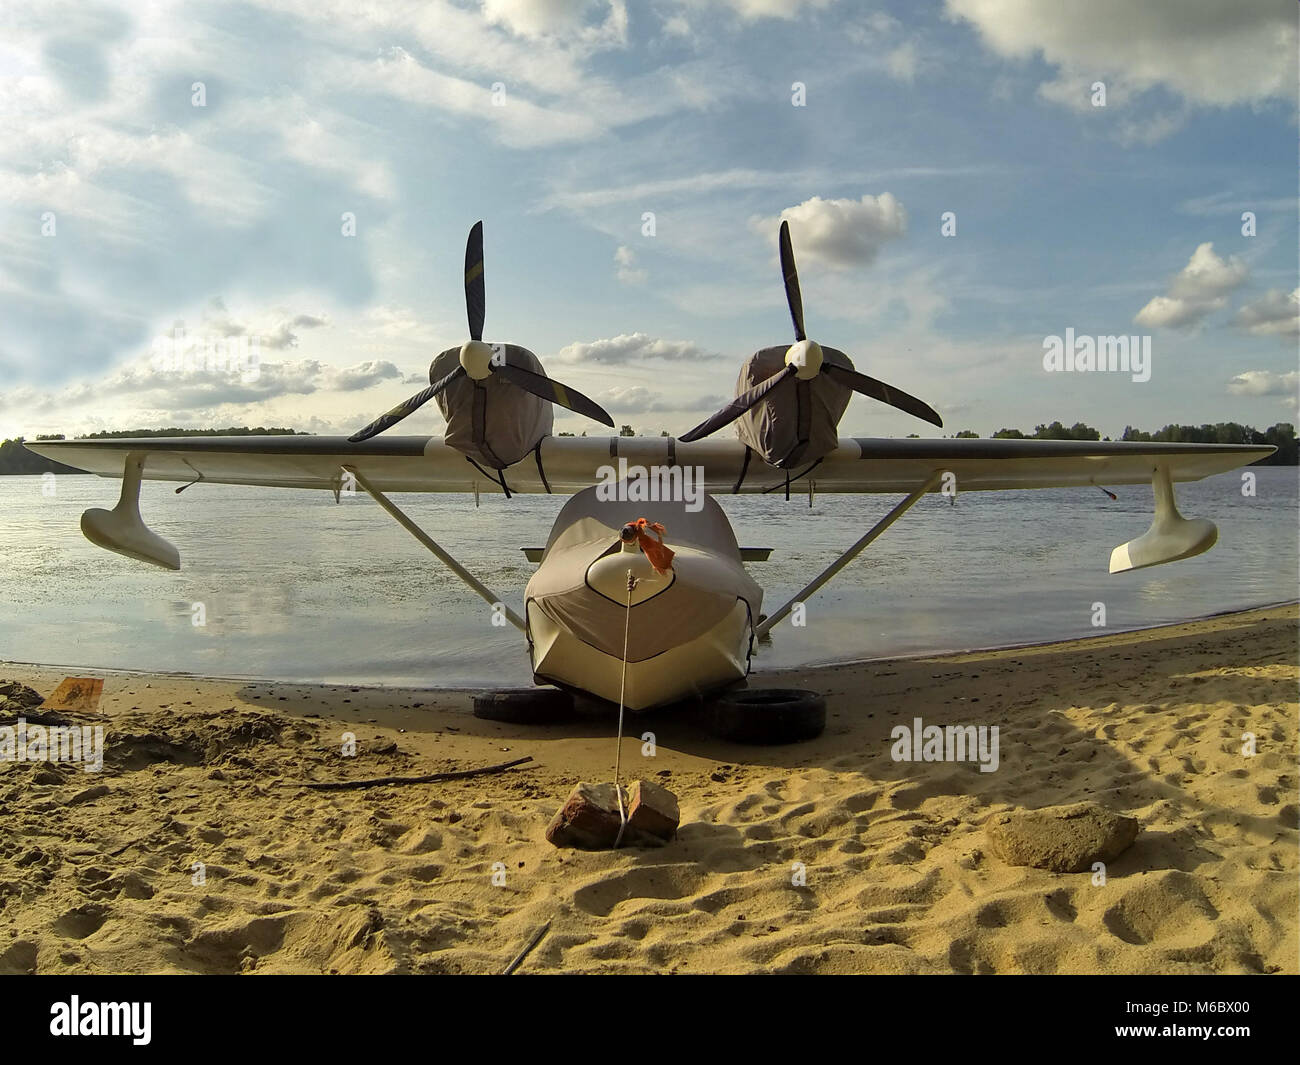 Flying boat on the beach - Stock Image